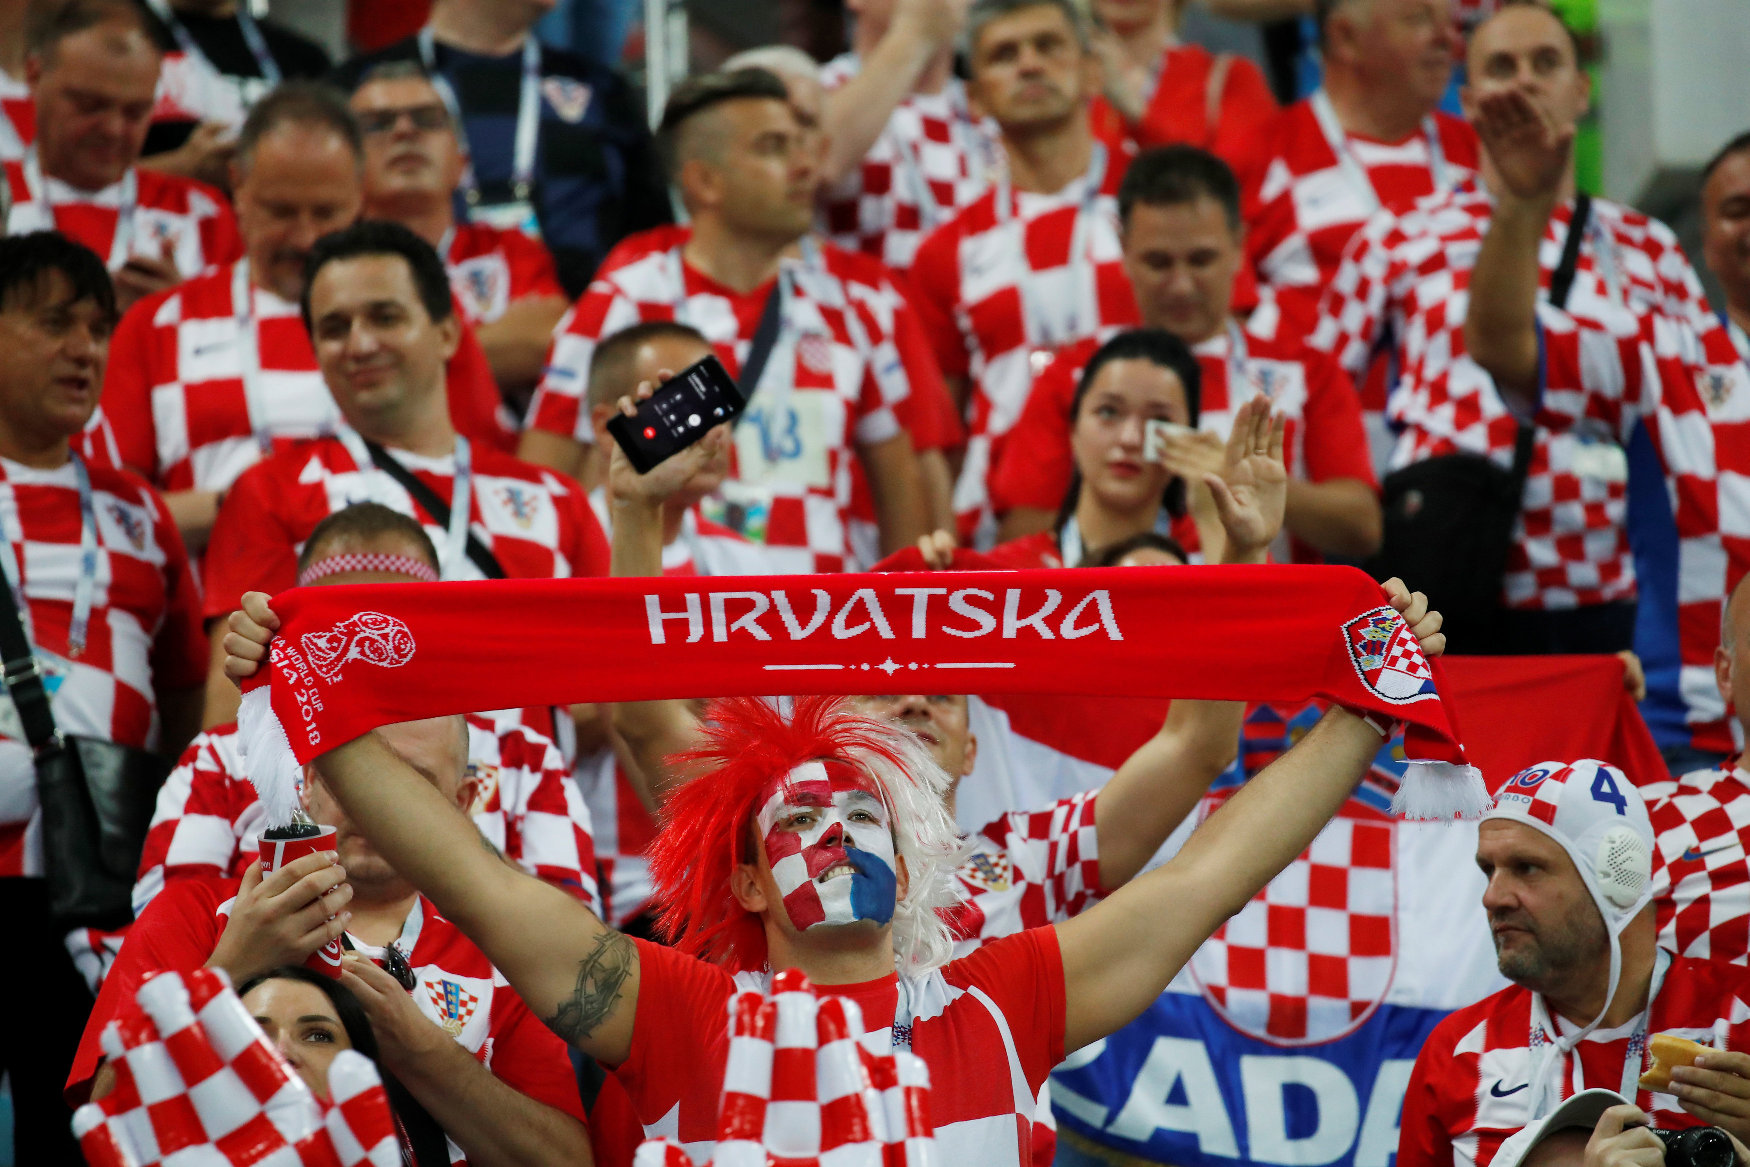 2018-07-07T174336Z_1320680086_RC1412D77540_RTRMADP_3_SOCCER-WORLDCUP-RUS-CRO